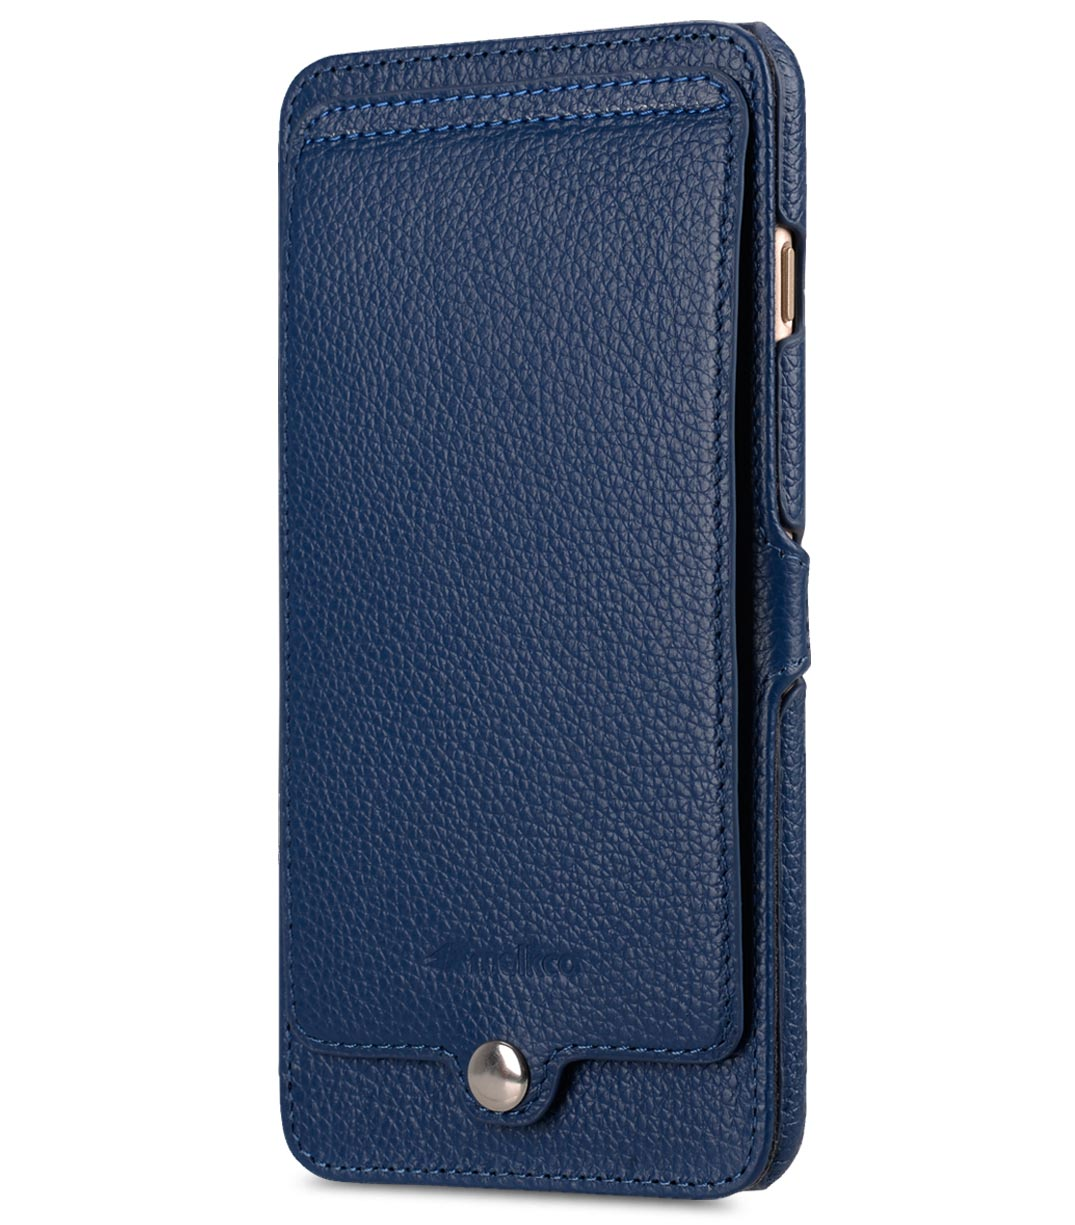 "Melkco Premium Leather Case for Apple iPhone 7 / 8 Plus(5.5"") - Booka Pocket Type (Dark Blue LC)"